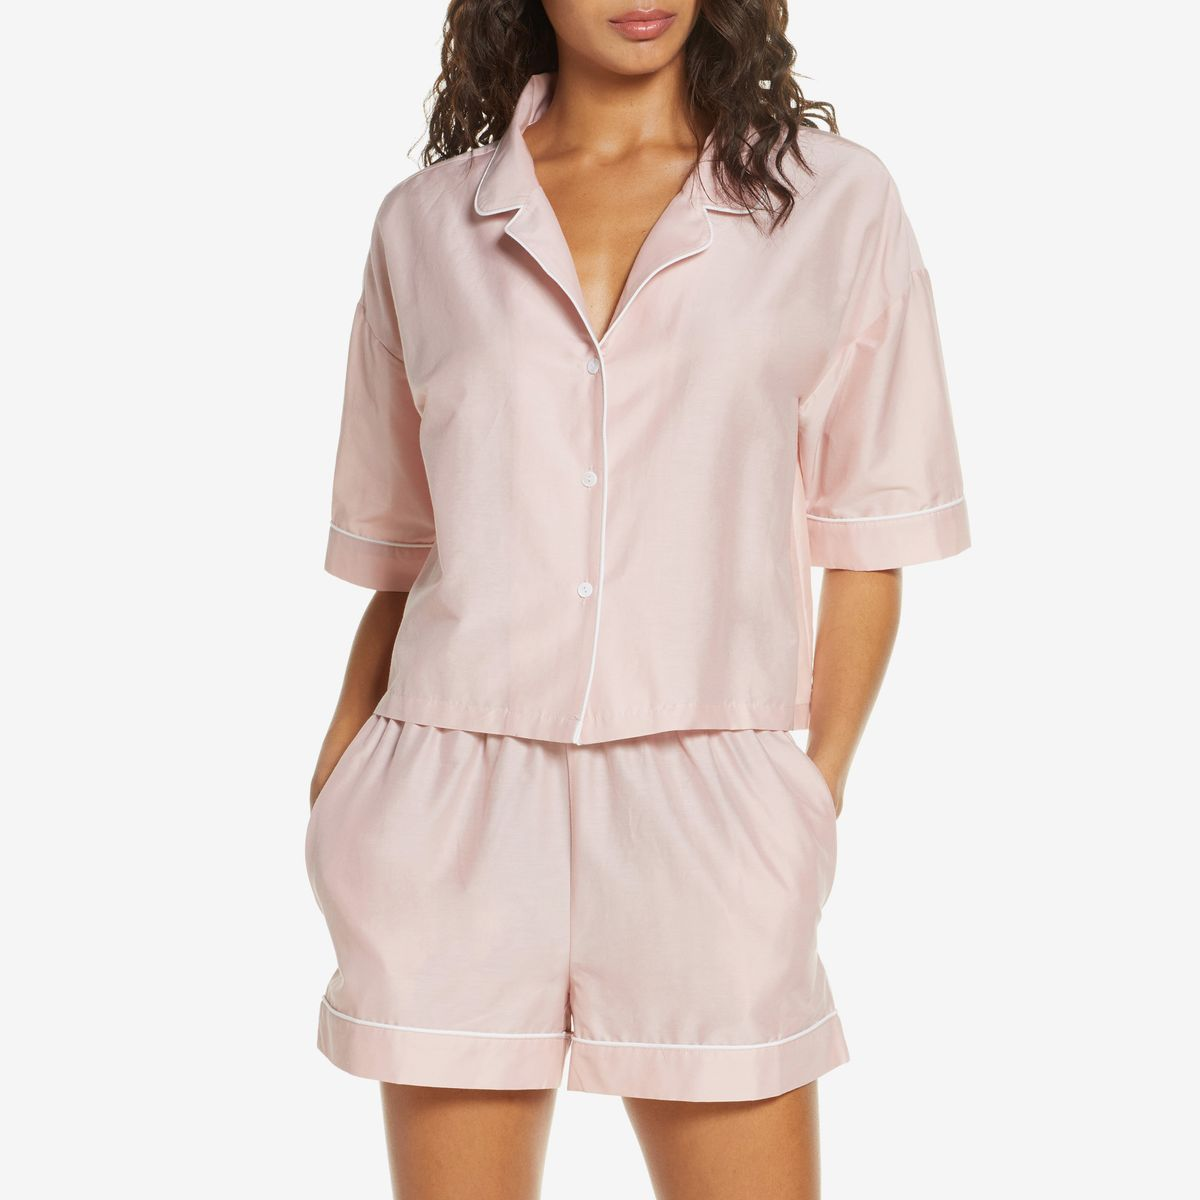 The 22 Best Pajamas For Women 2020